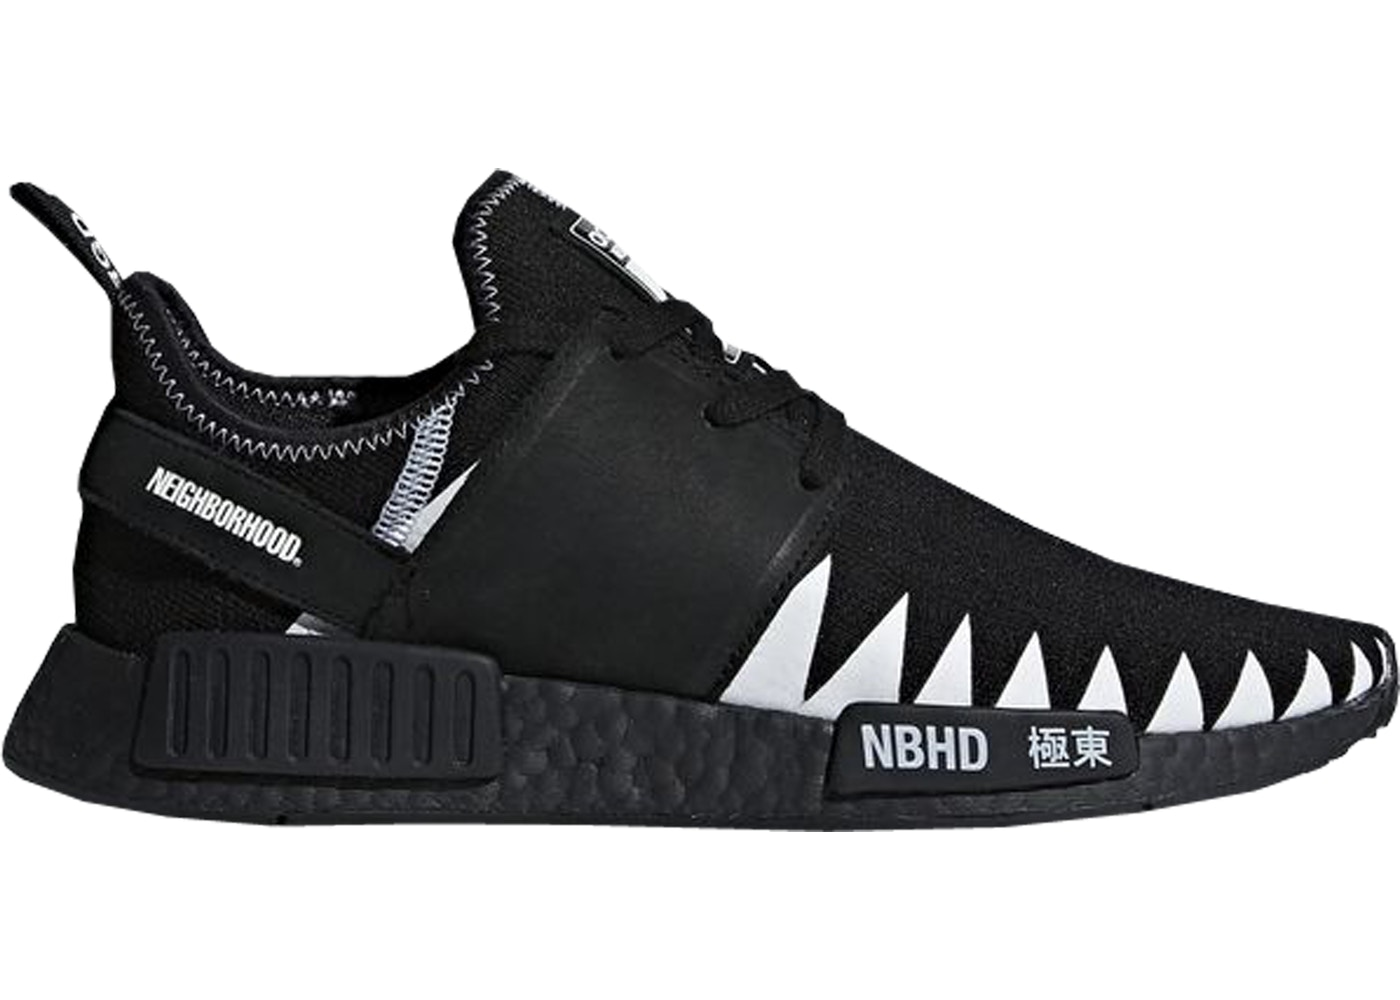 c87fbcfc252d7 Buy adidas NMD R1 Shoes   Deadstock Sneakers